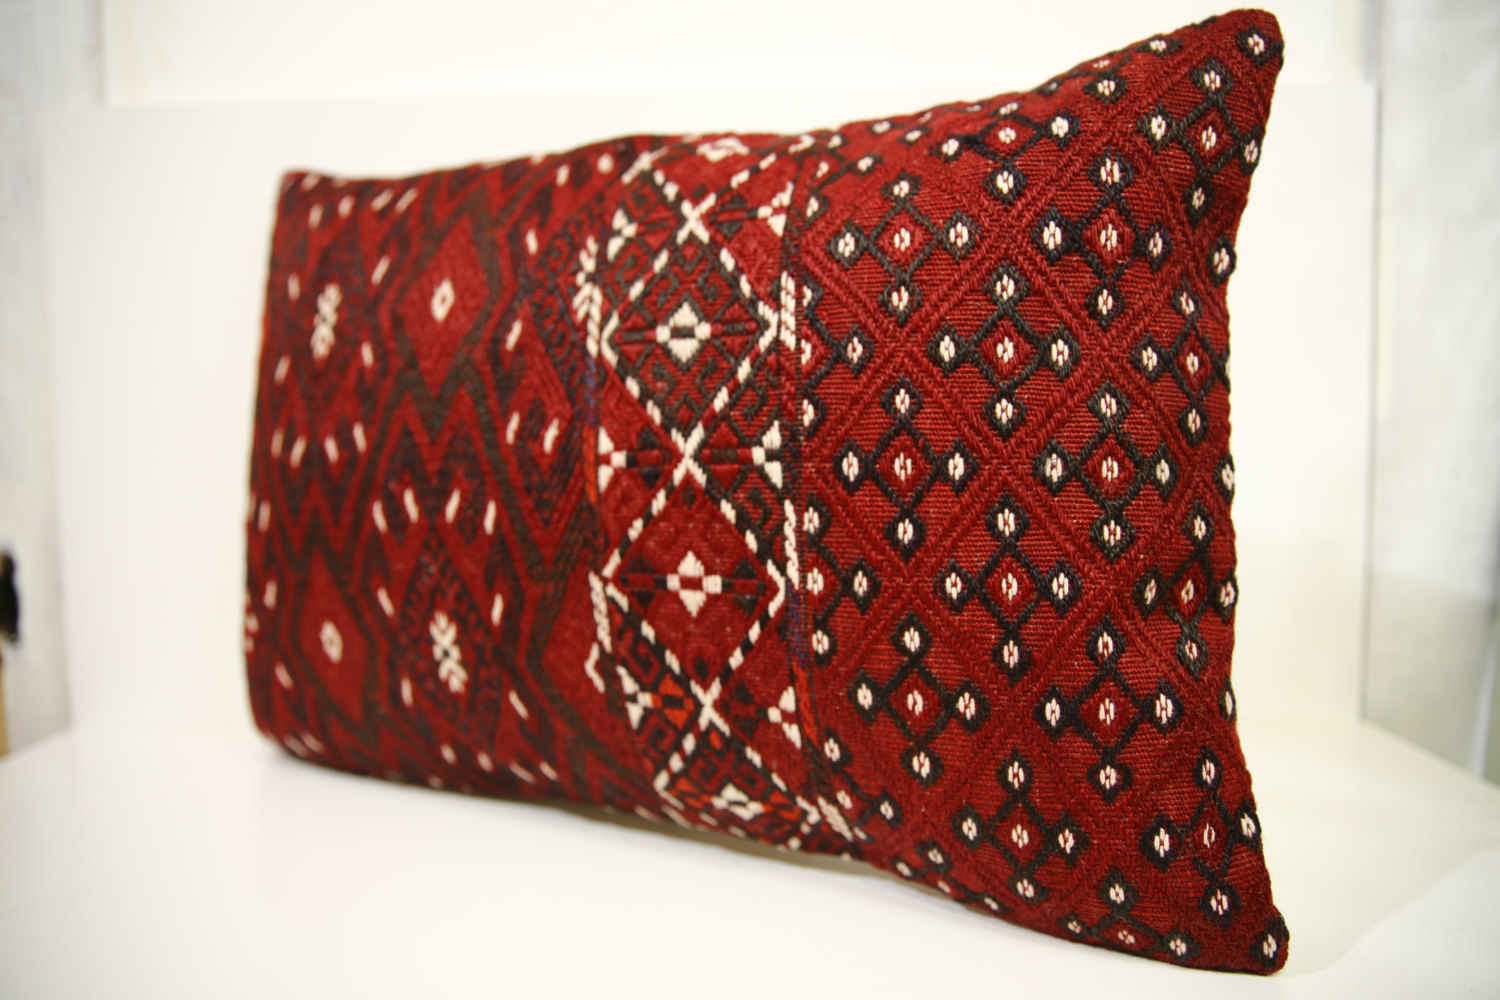 Kilim Pillows | 24x16 | Lumbar pillows | 1466 | Turkish pillows , throw pillows